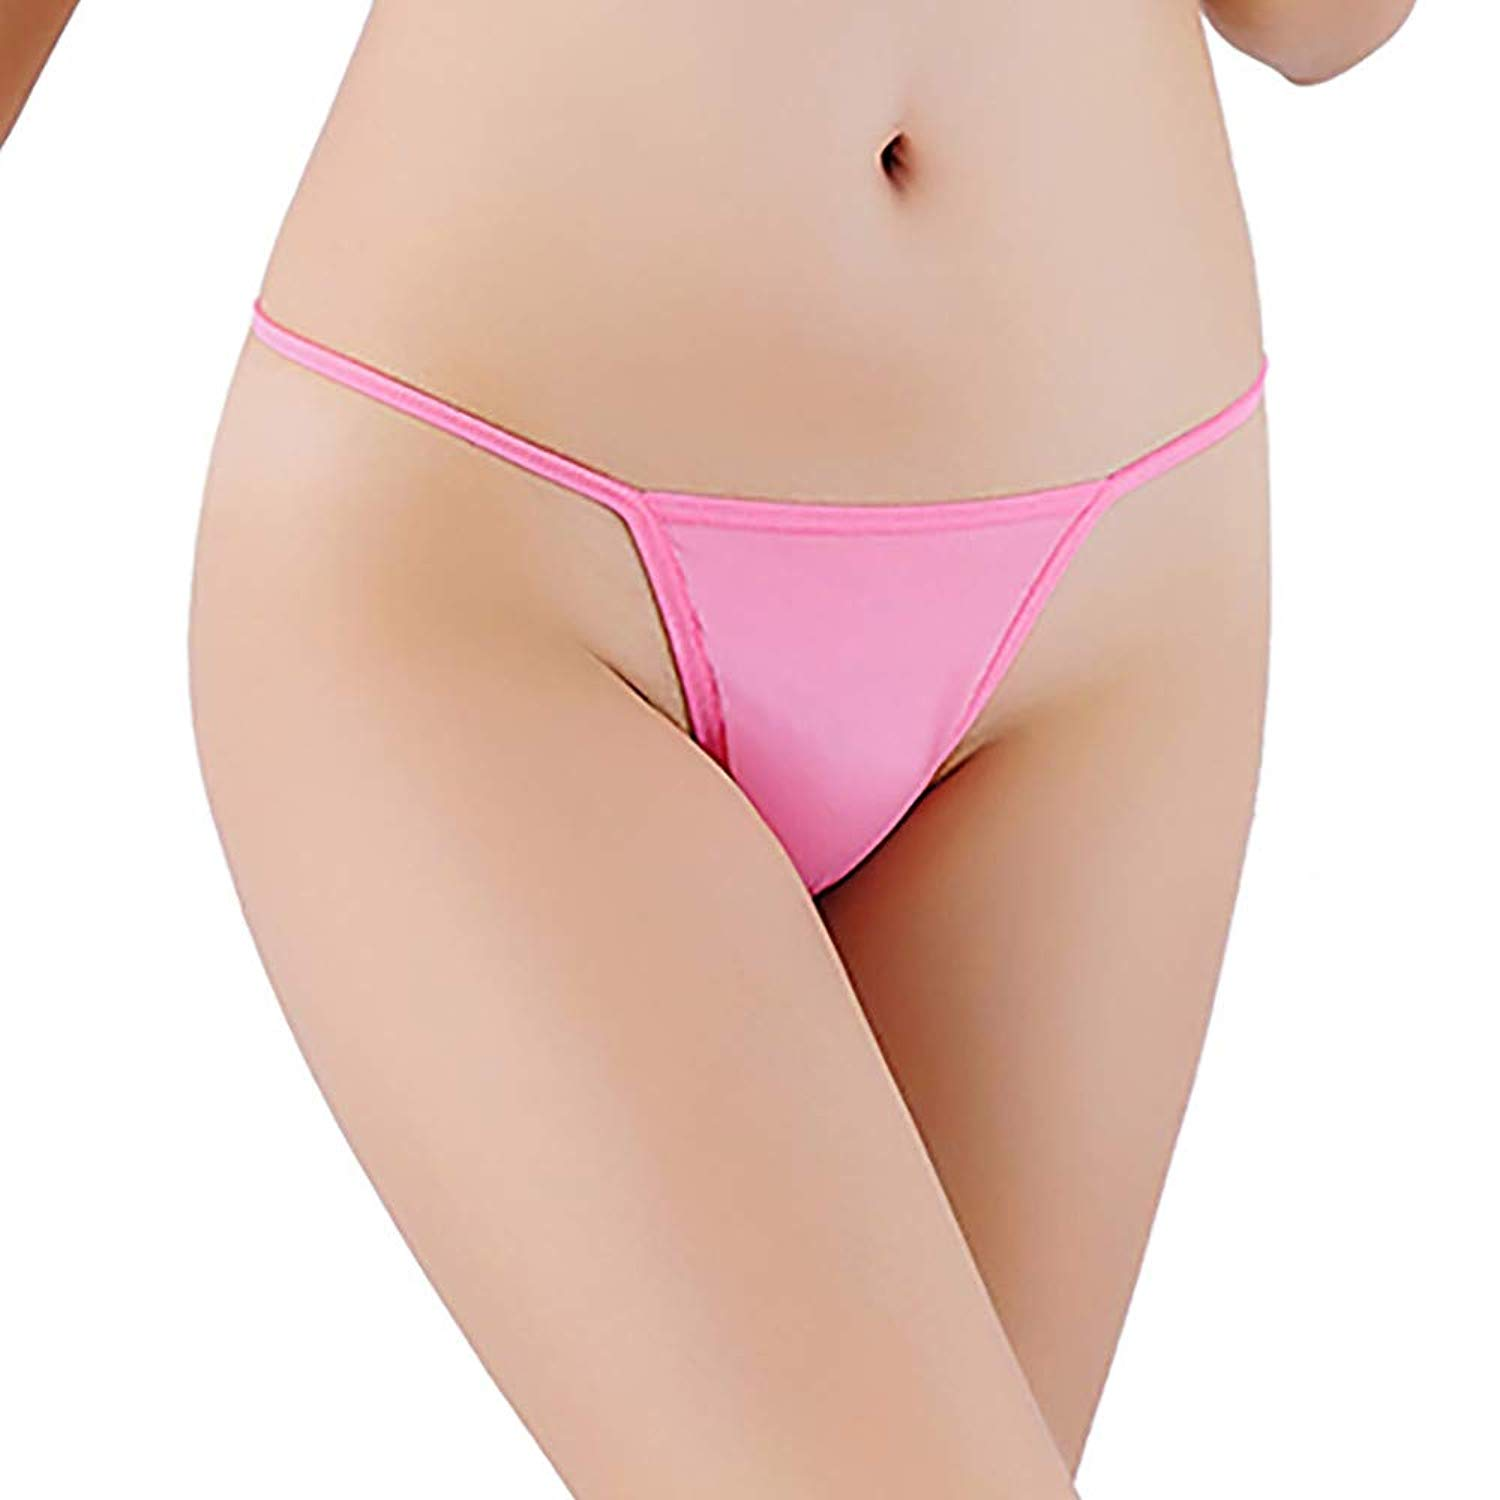 9bb7daf8818 Get Quotations · ManxiVoo Womens Low Rise G-String Stretchy Bandage Panties  Sexy Thong T-Back Underwear